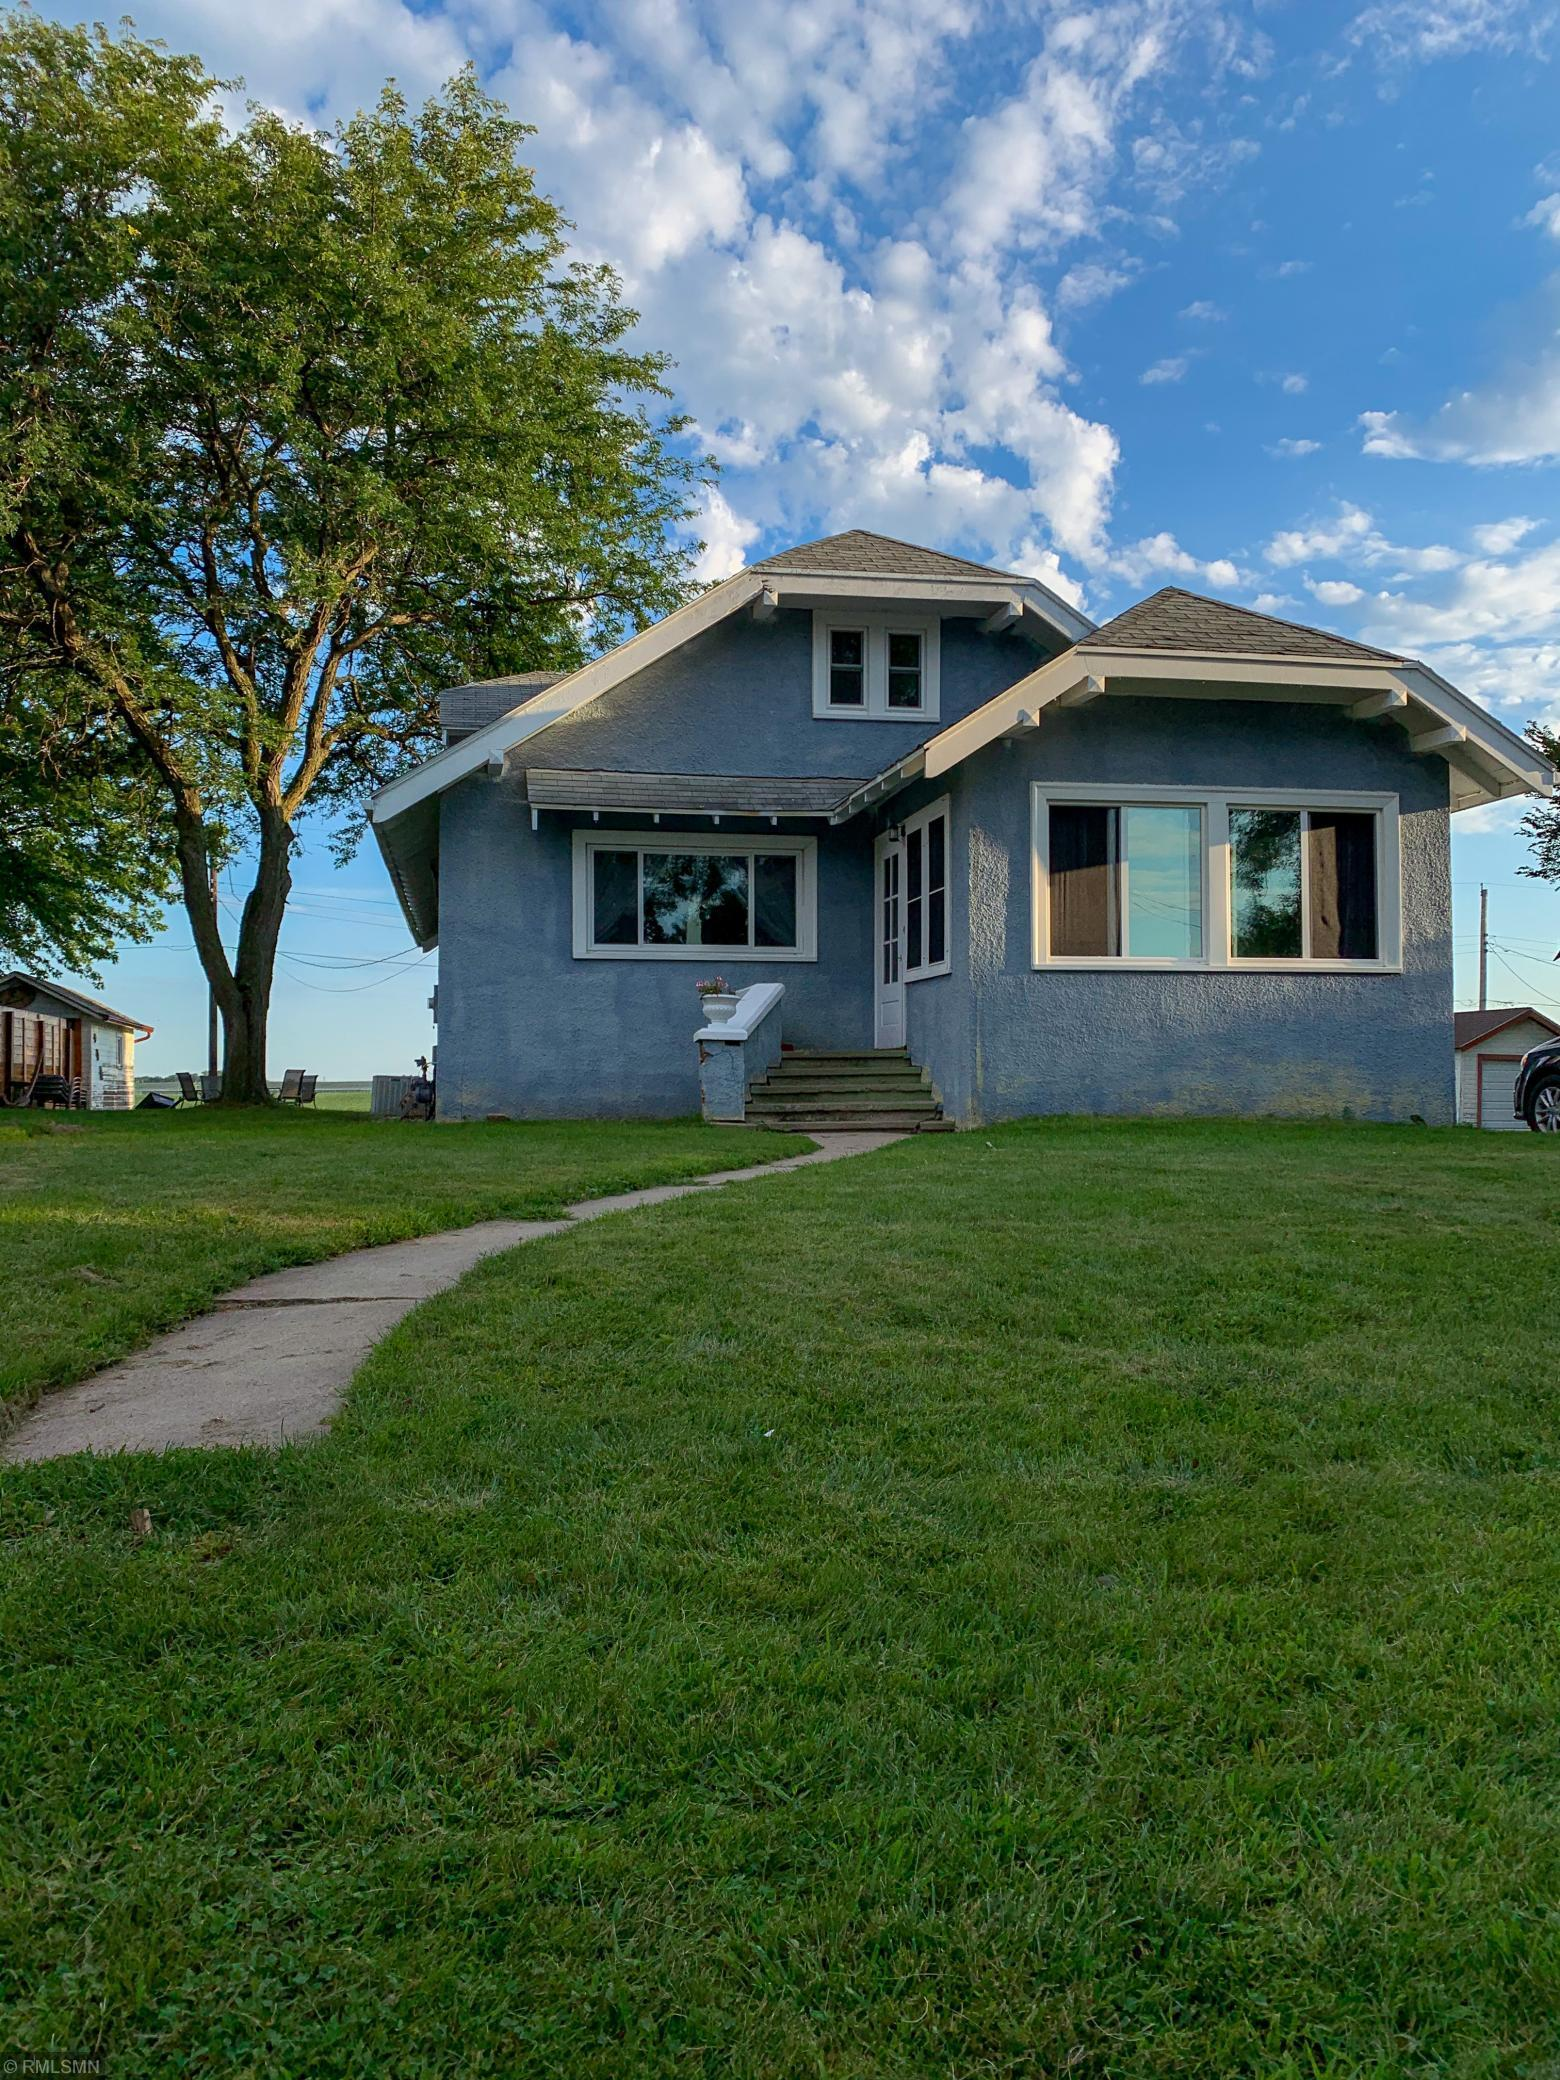 142 E 7th Street Property Photo - Gibbon, MN real estate listing